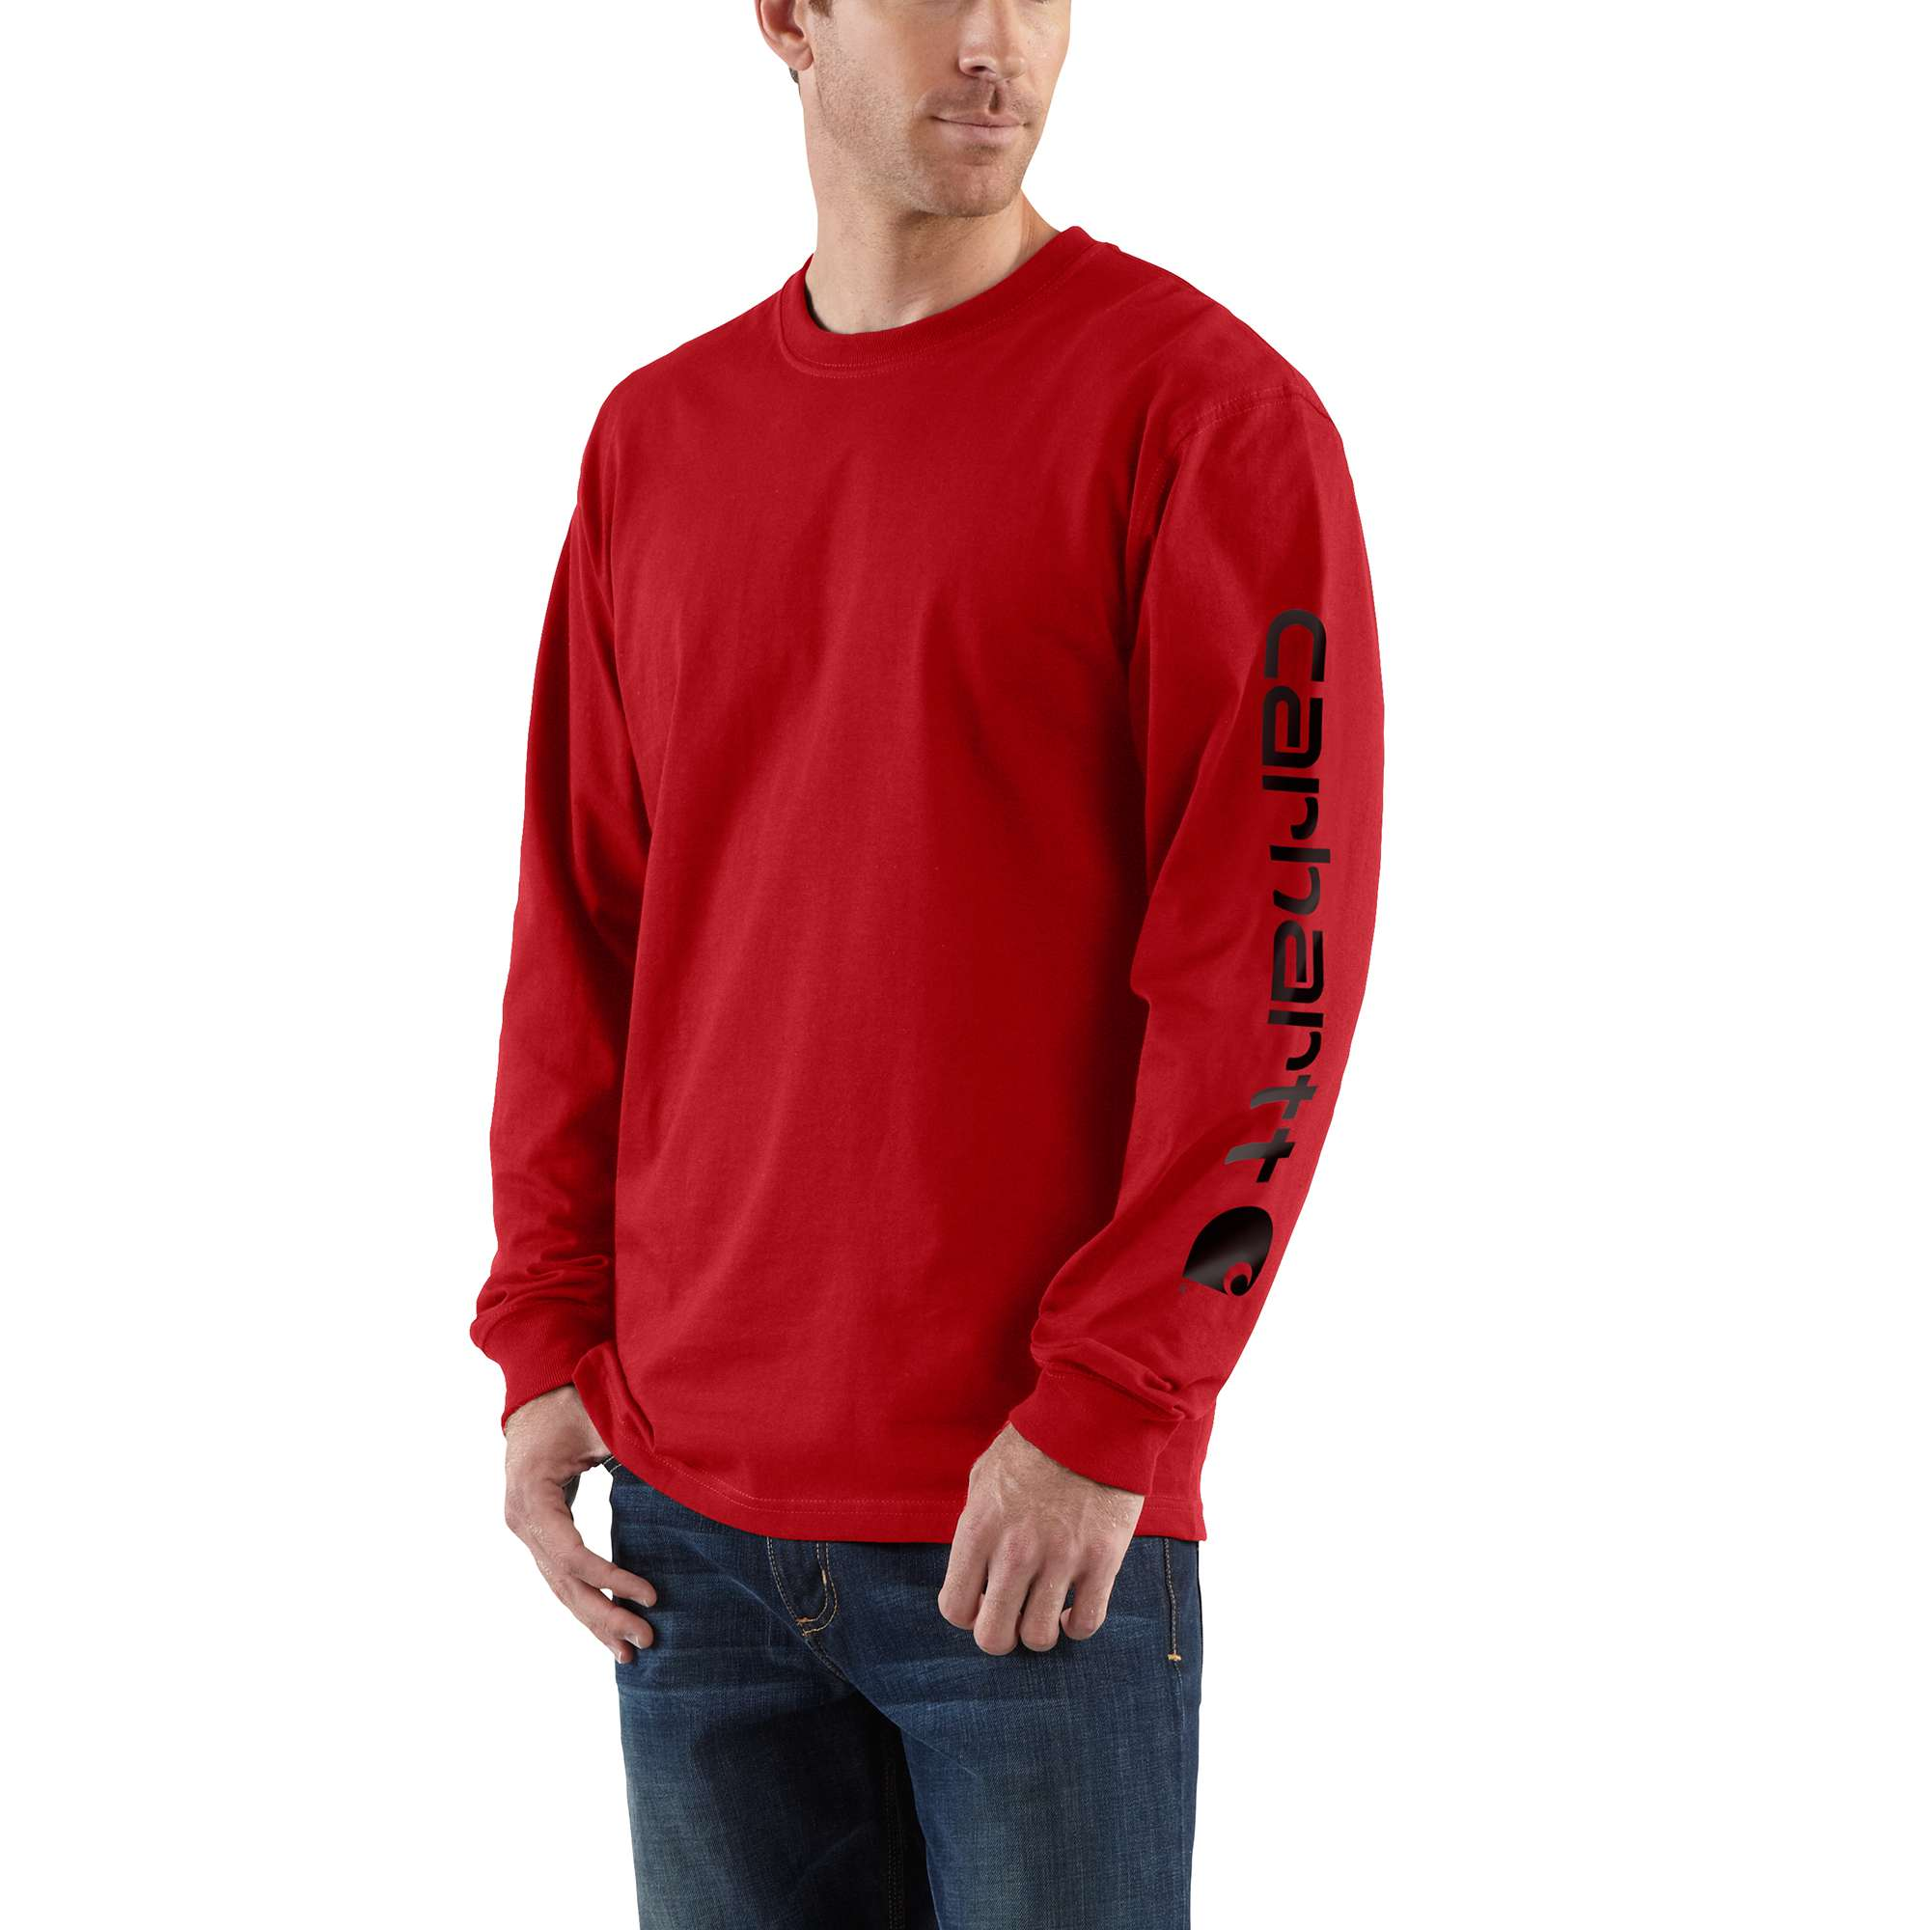 Men's Workwear Long-Sleeve Graphic Logo T-Shirt, Red, swatch